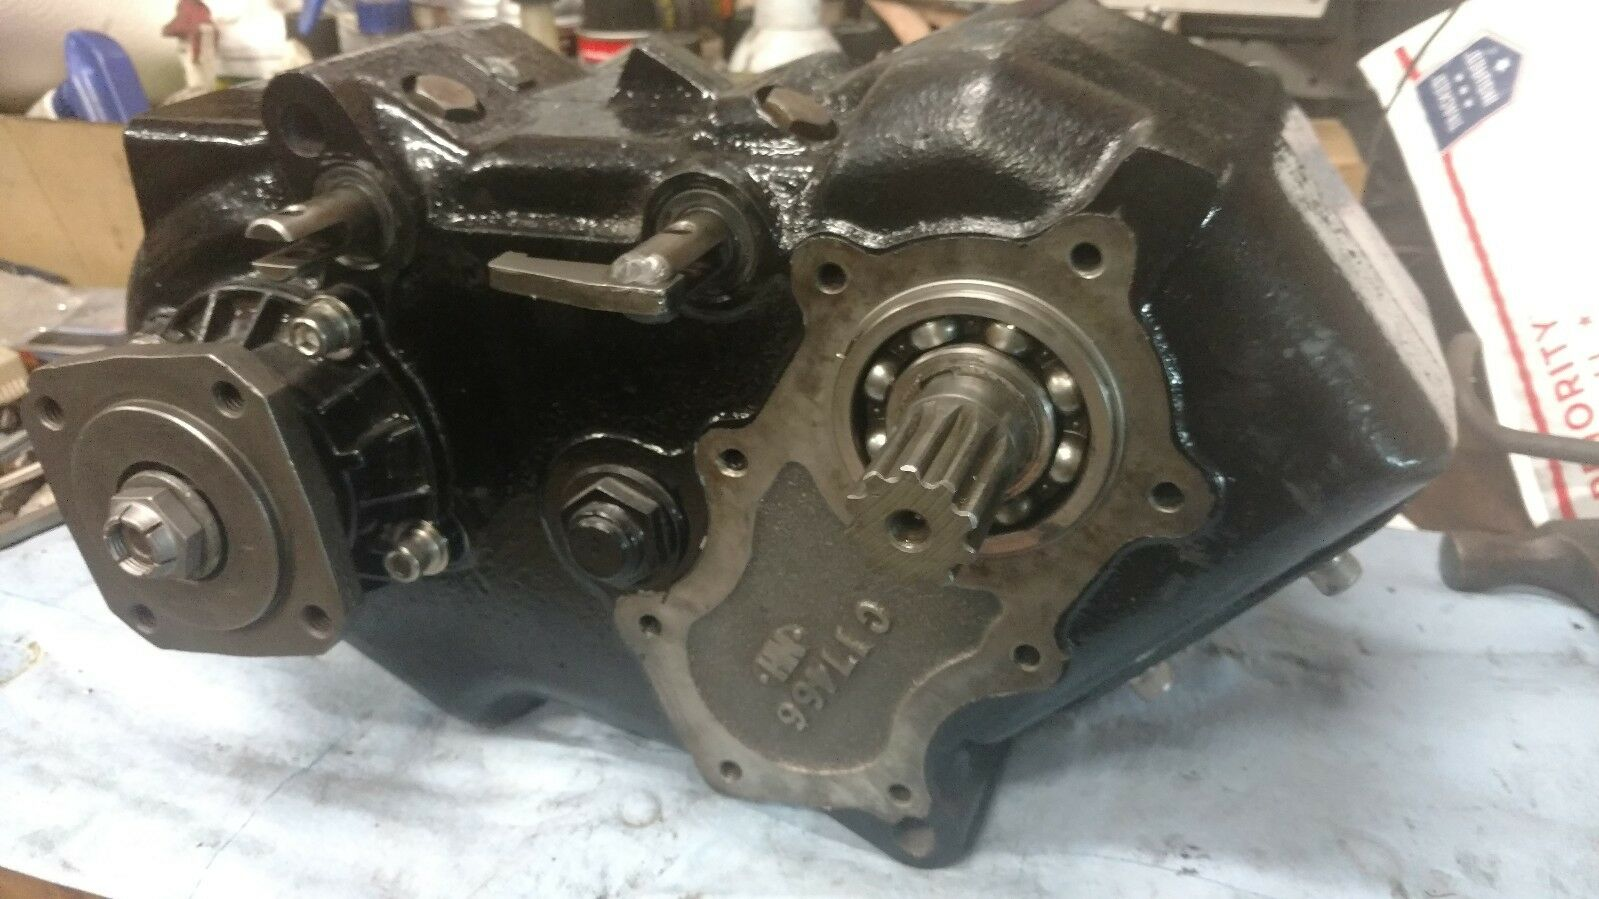 All Chevy chevy 205 transfer case : NP 205 Gear Shift Fork Sliders NP205 Transfer Case Chevy Ford ...